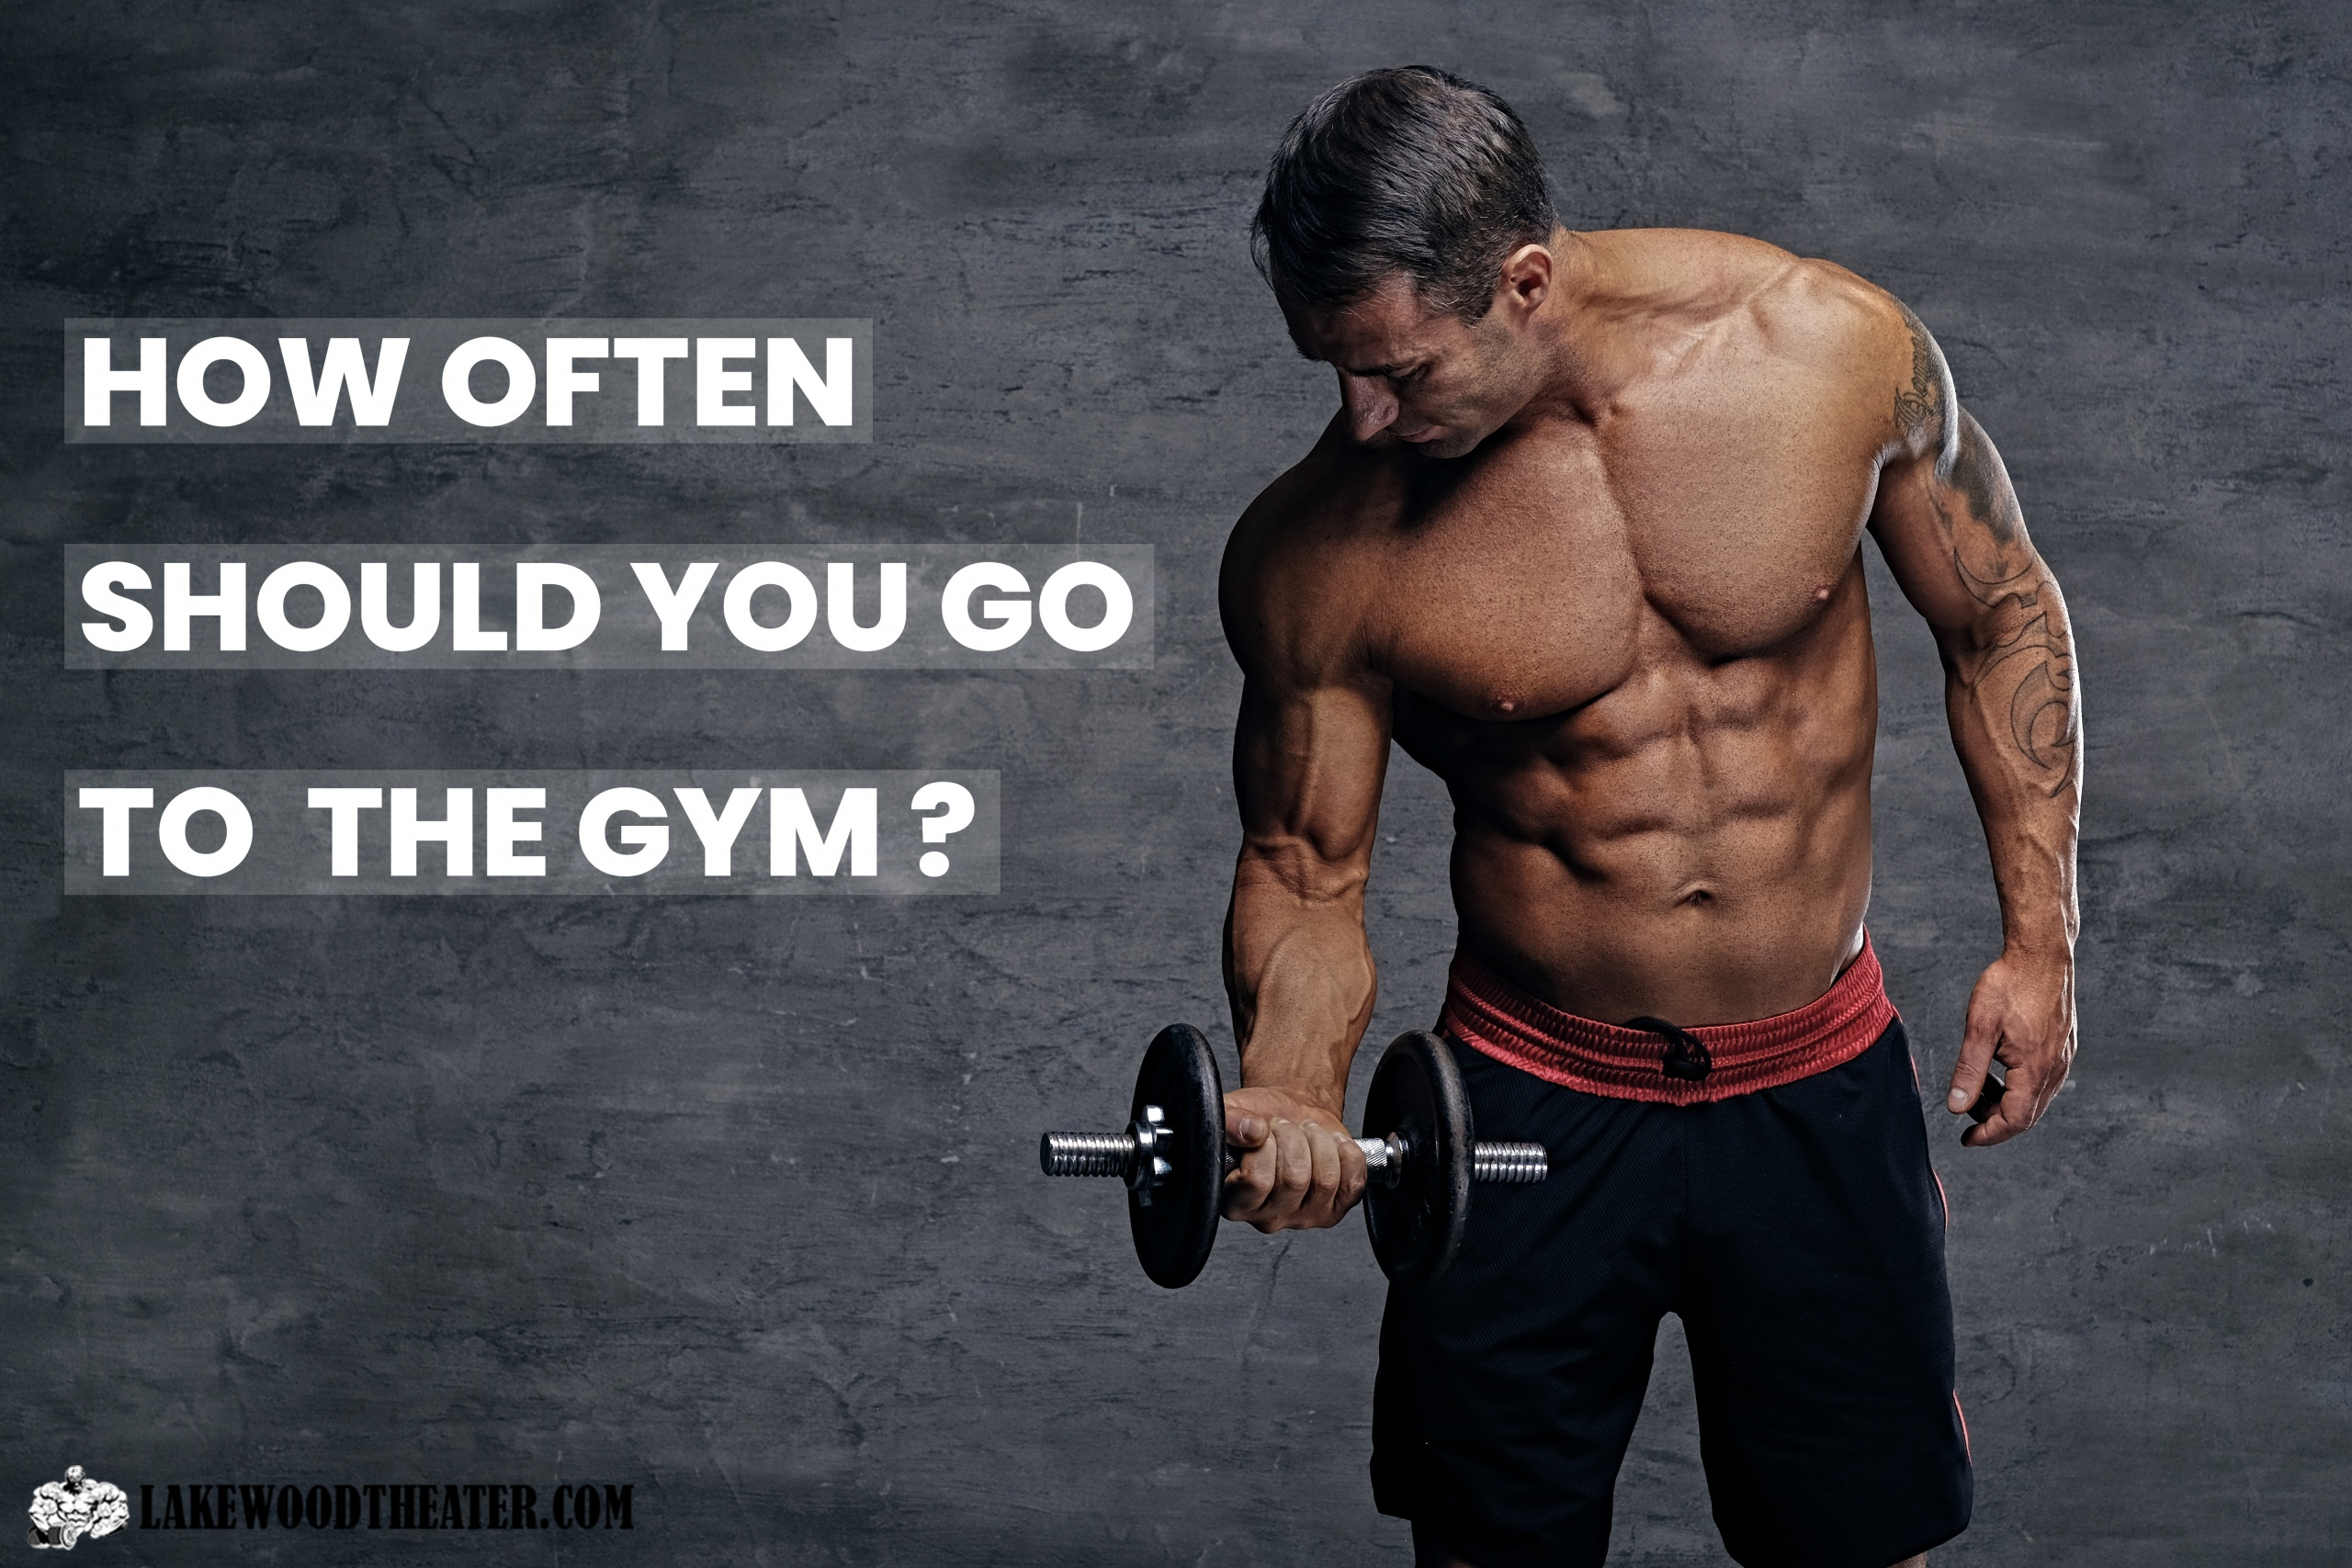 How often should you go to the gym?